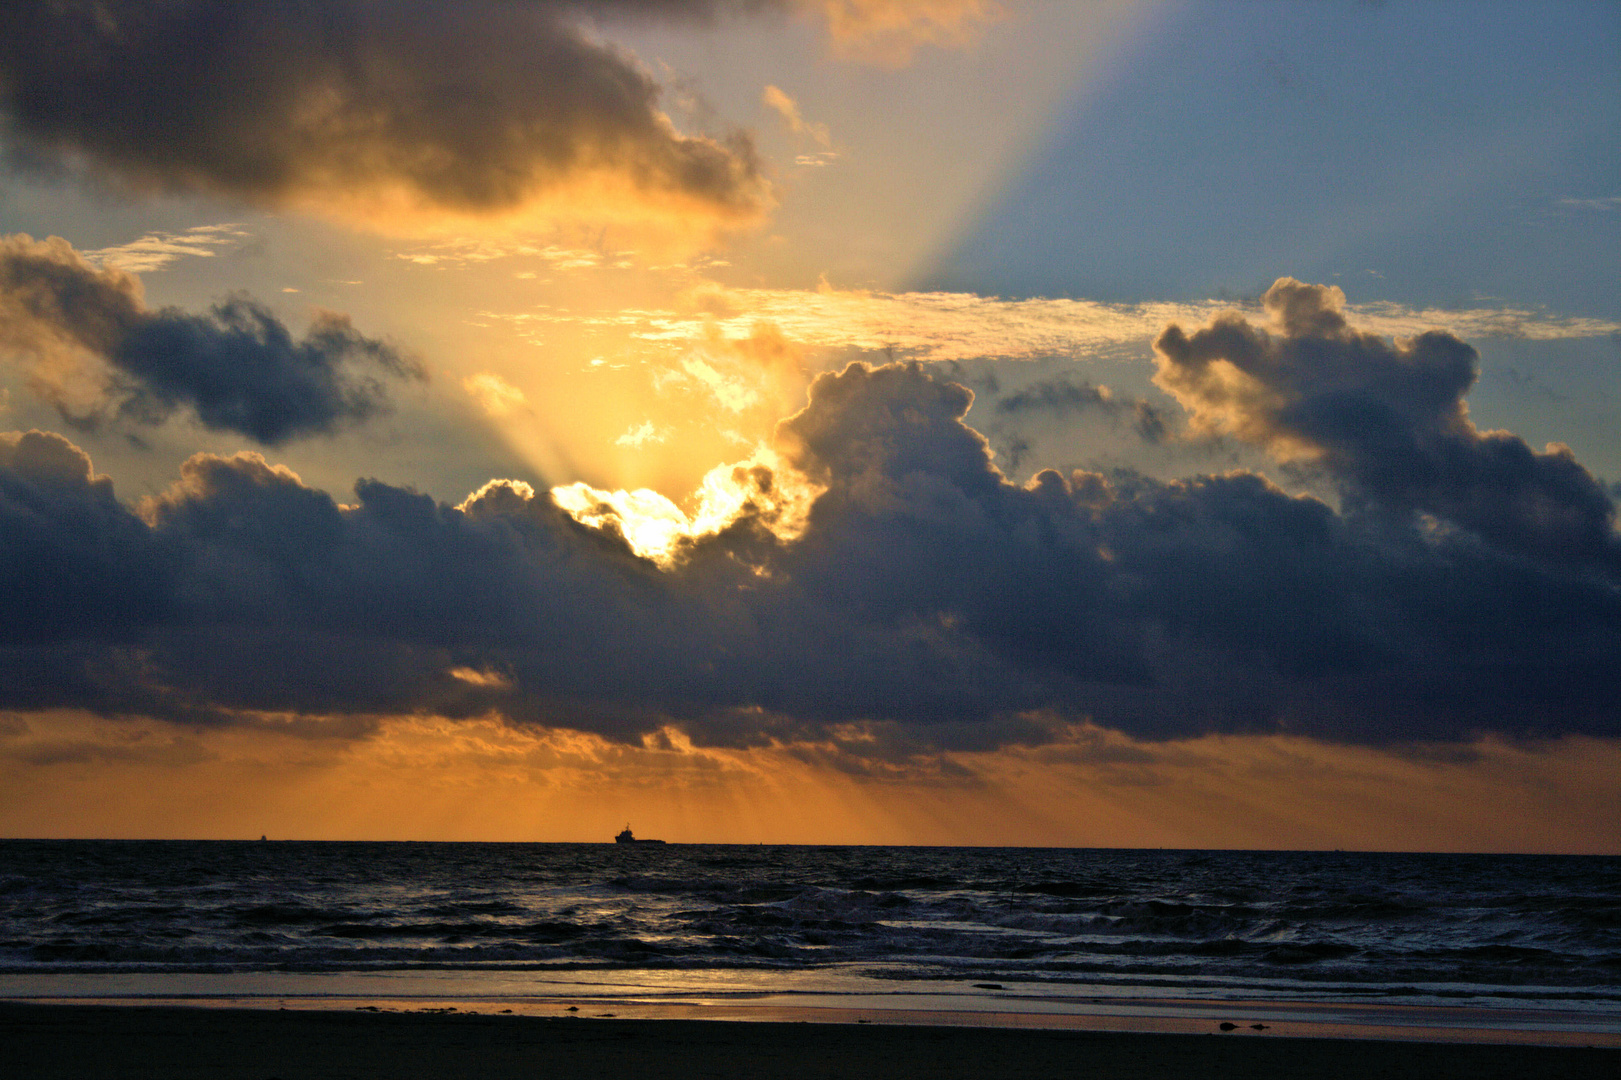 wann rei t der himmel auf foto bild landschaft. Black Bedroom Furniture Sets. Home Design Ideas